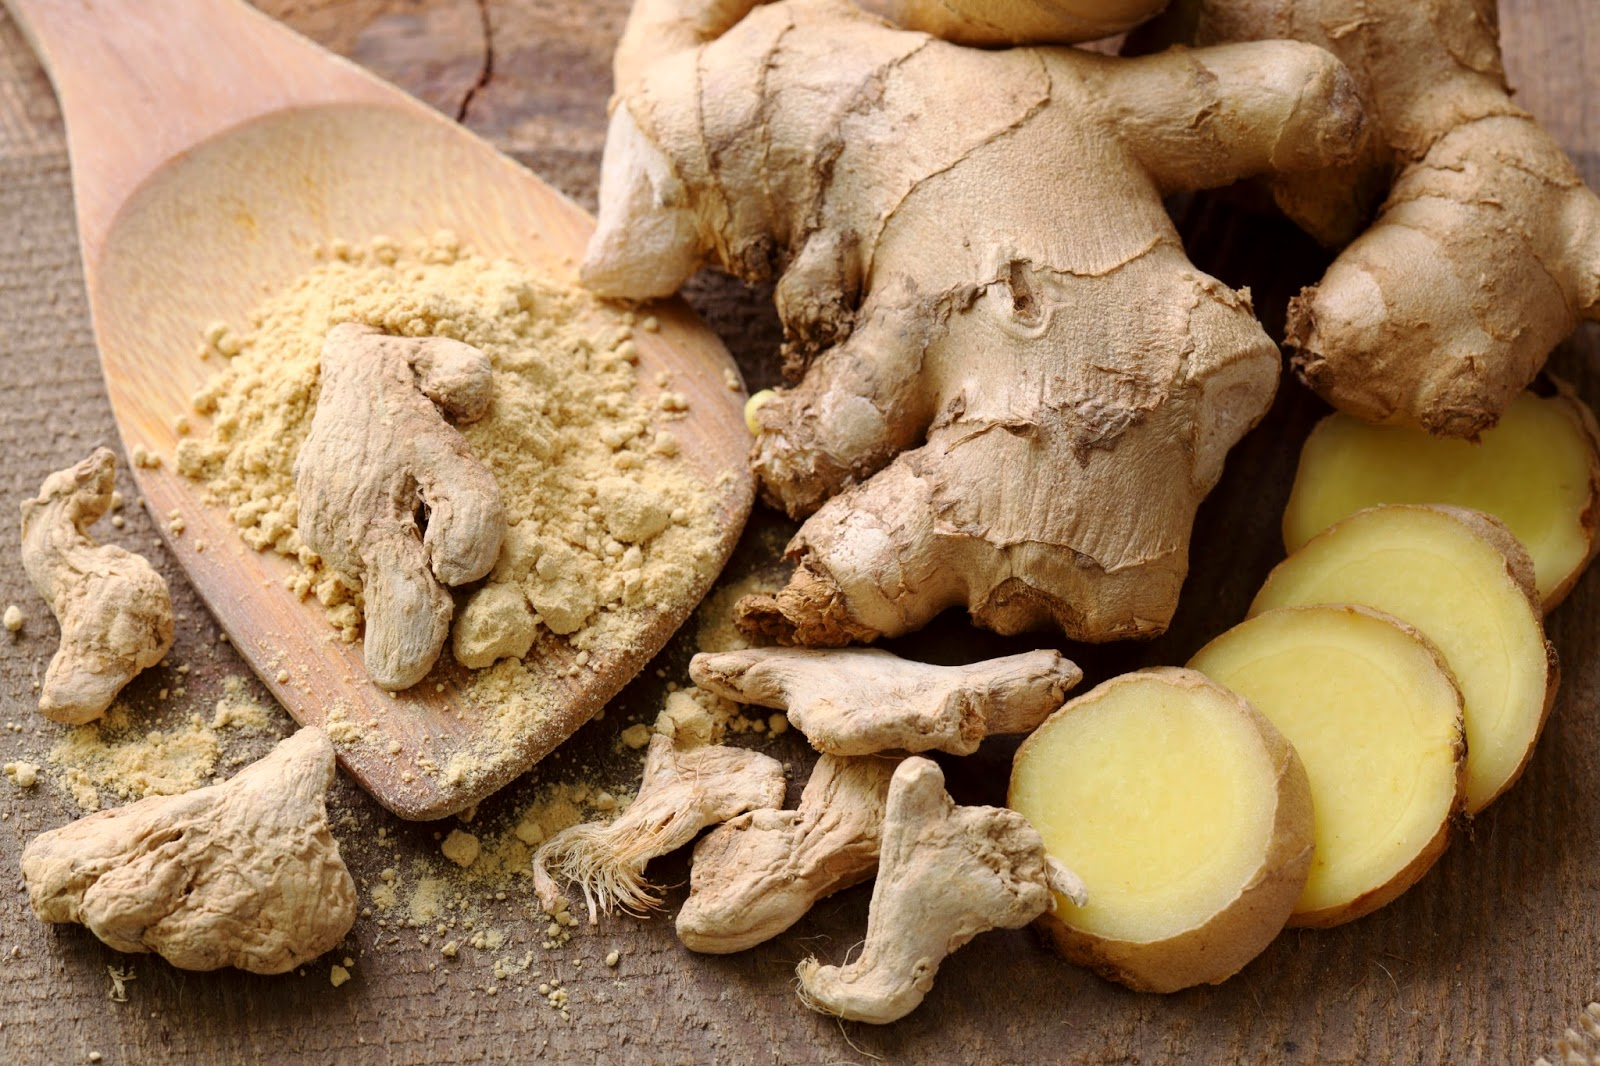 ginger for immune system